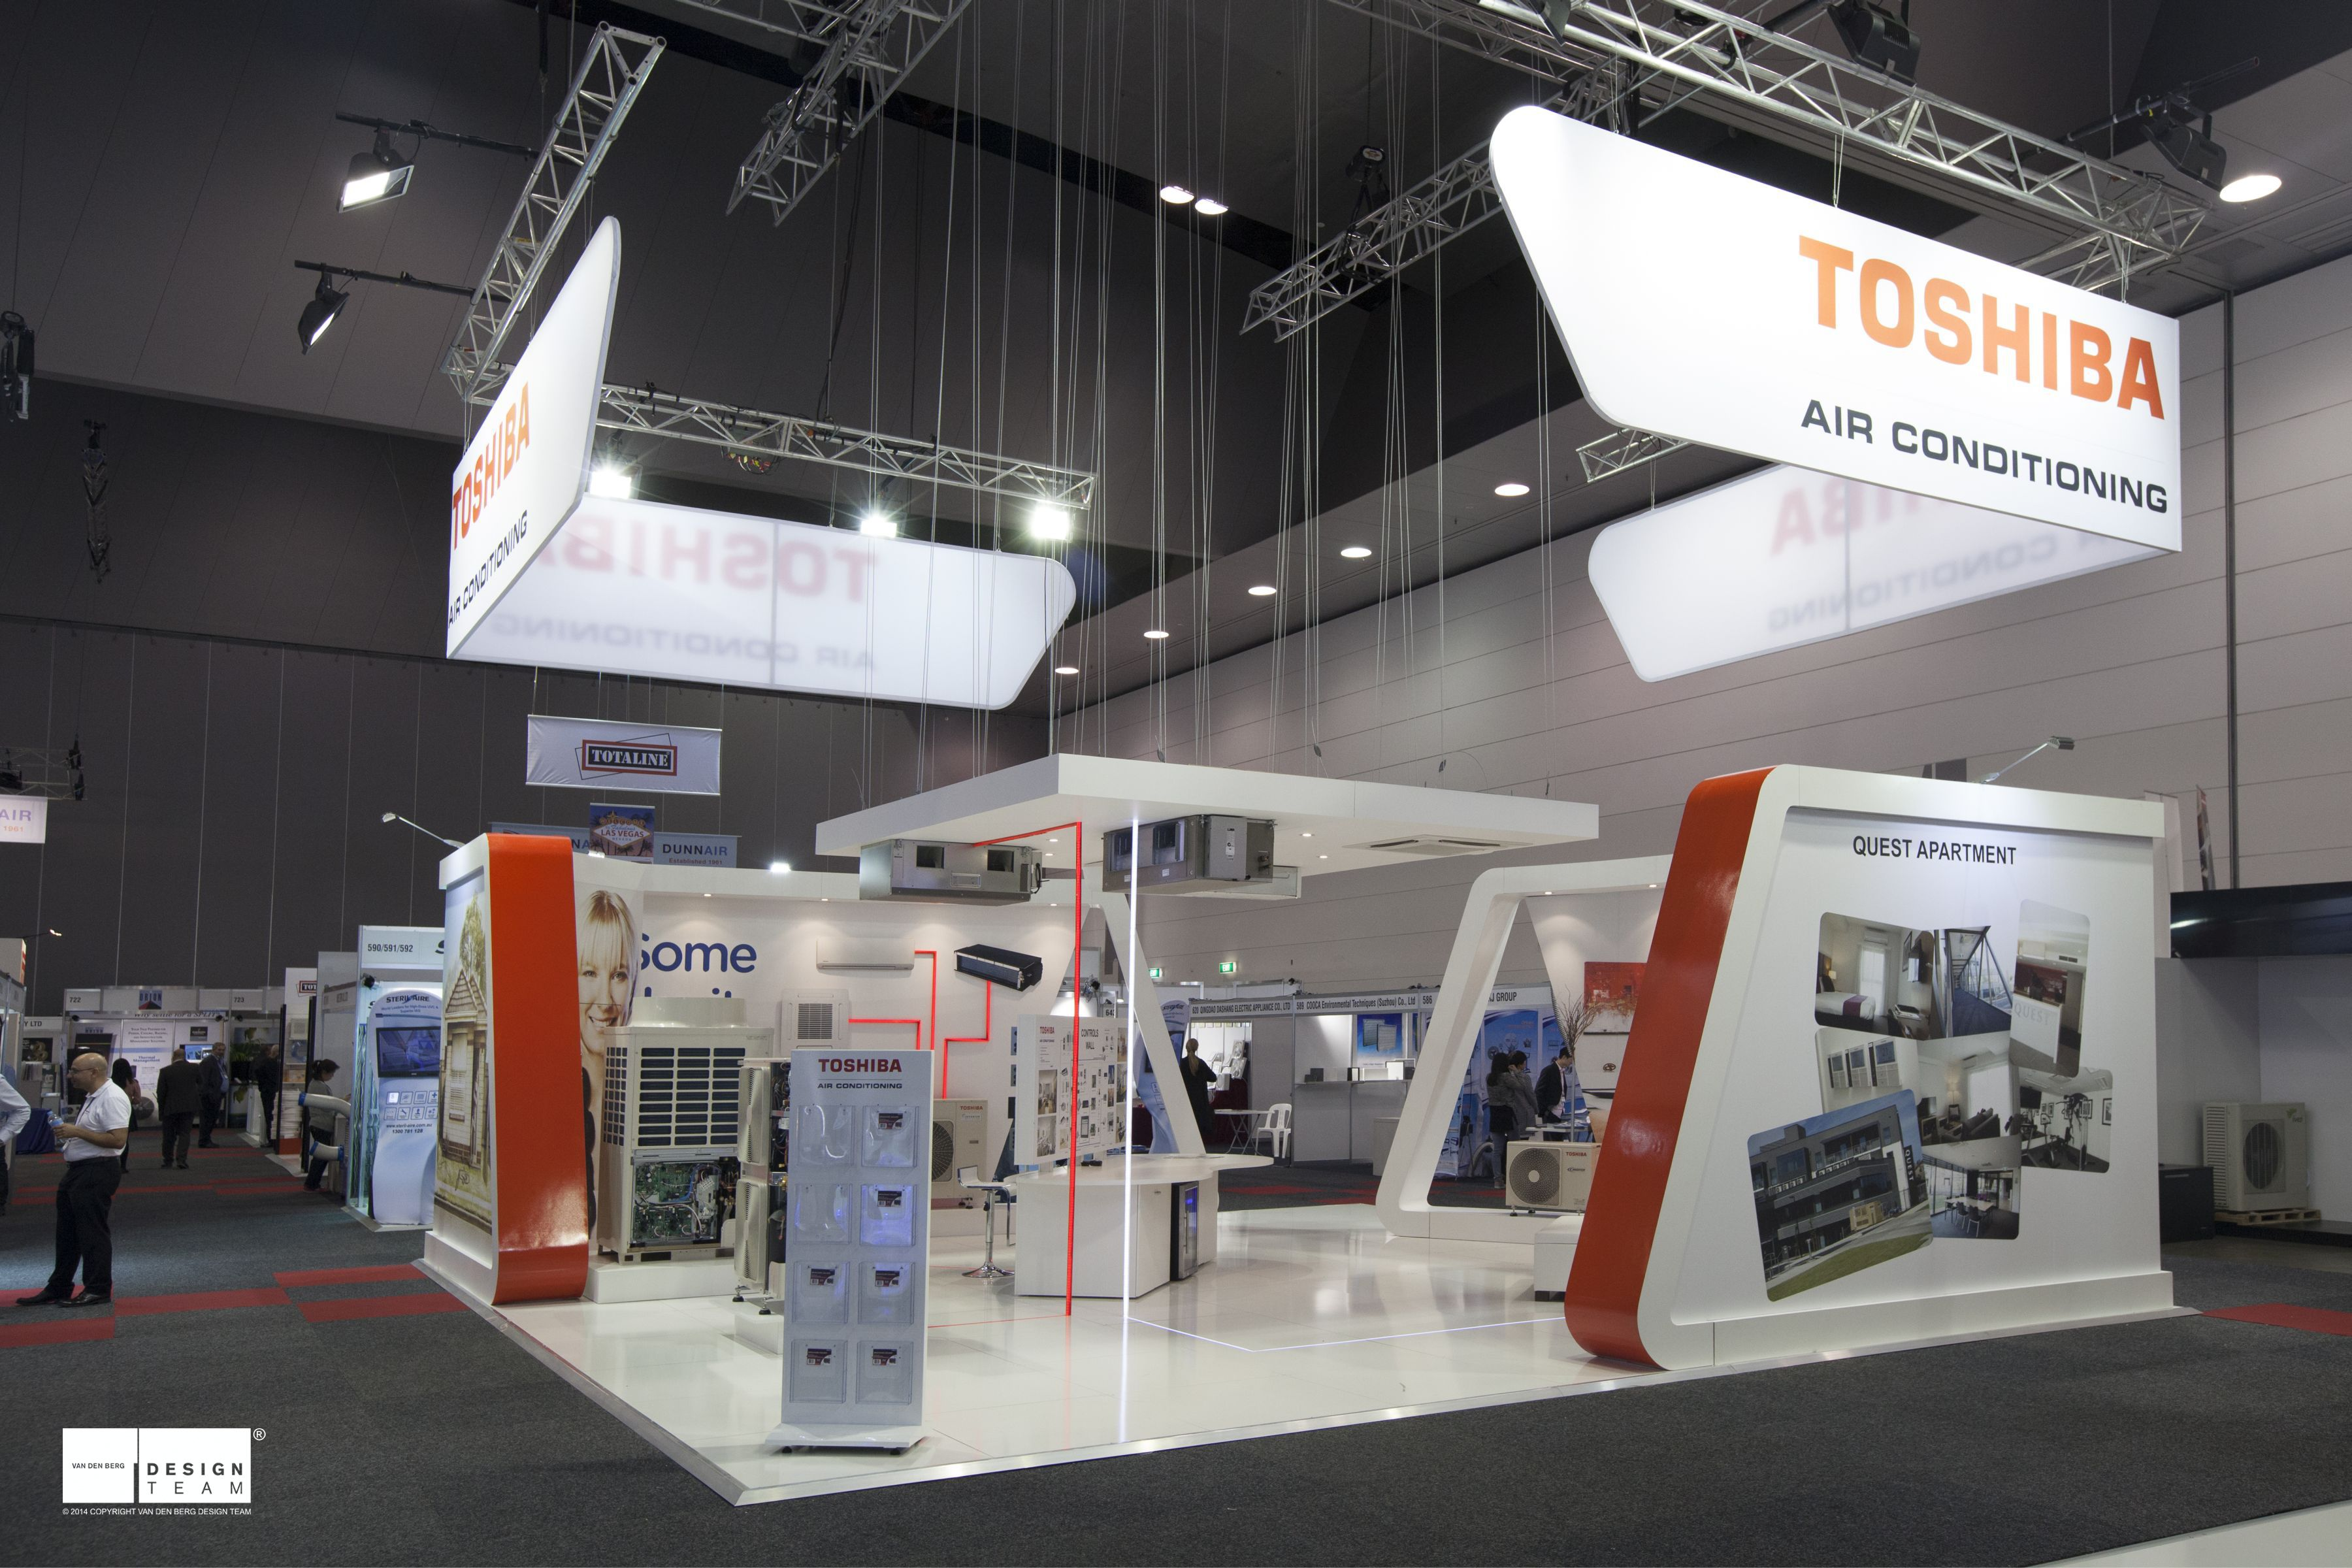 Exhibition Stand Attractors : Toshiba @ arbs having previously exhibited as part of the ahi